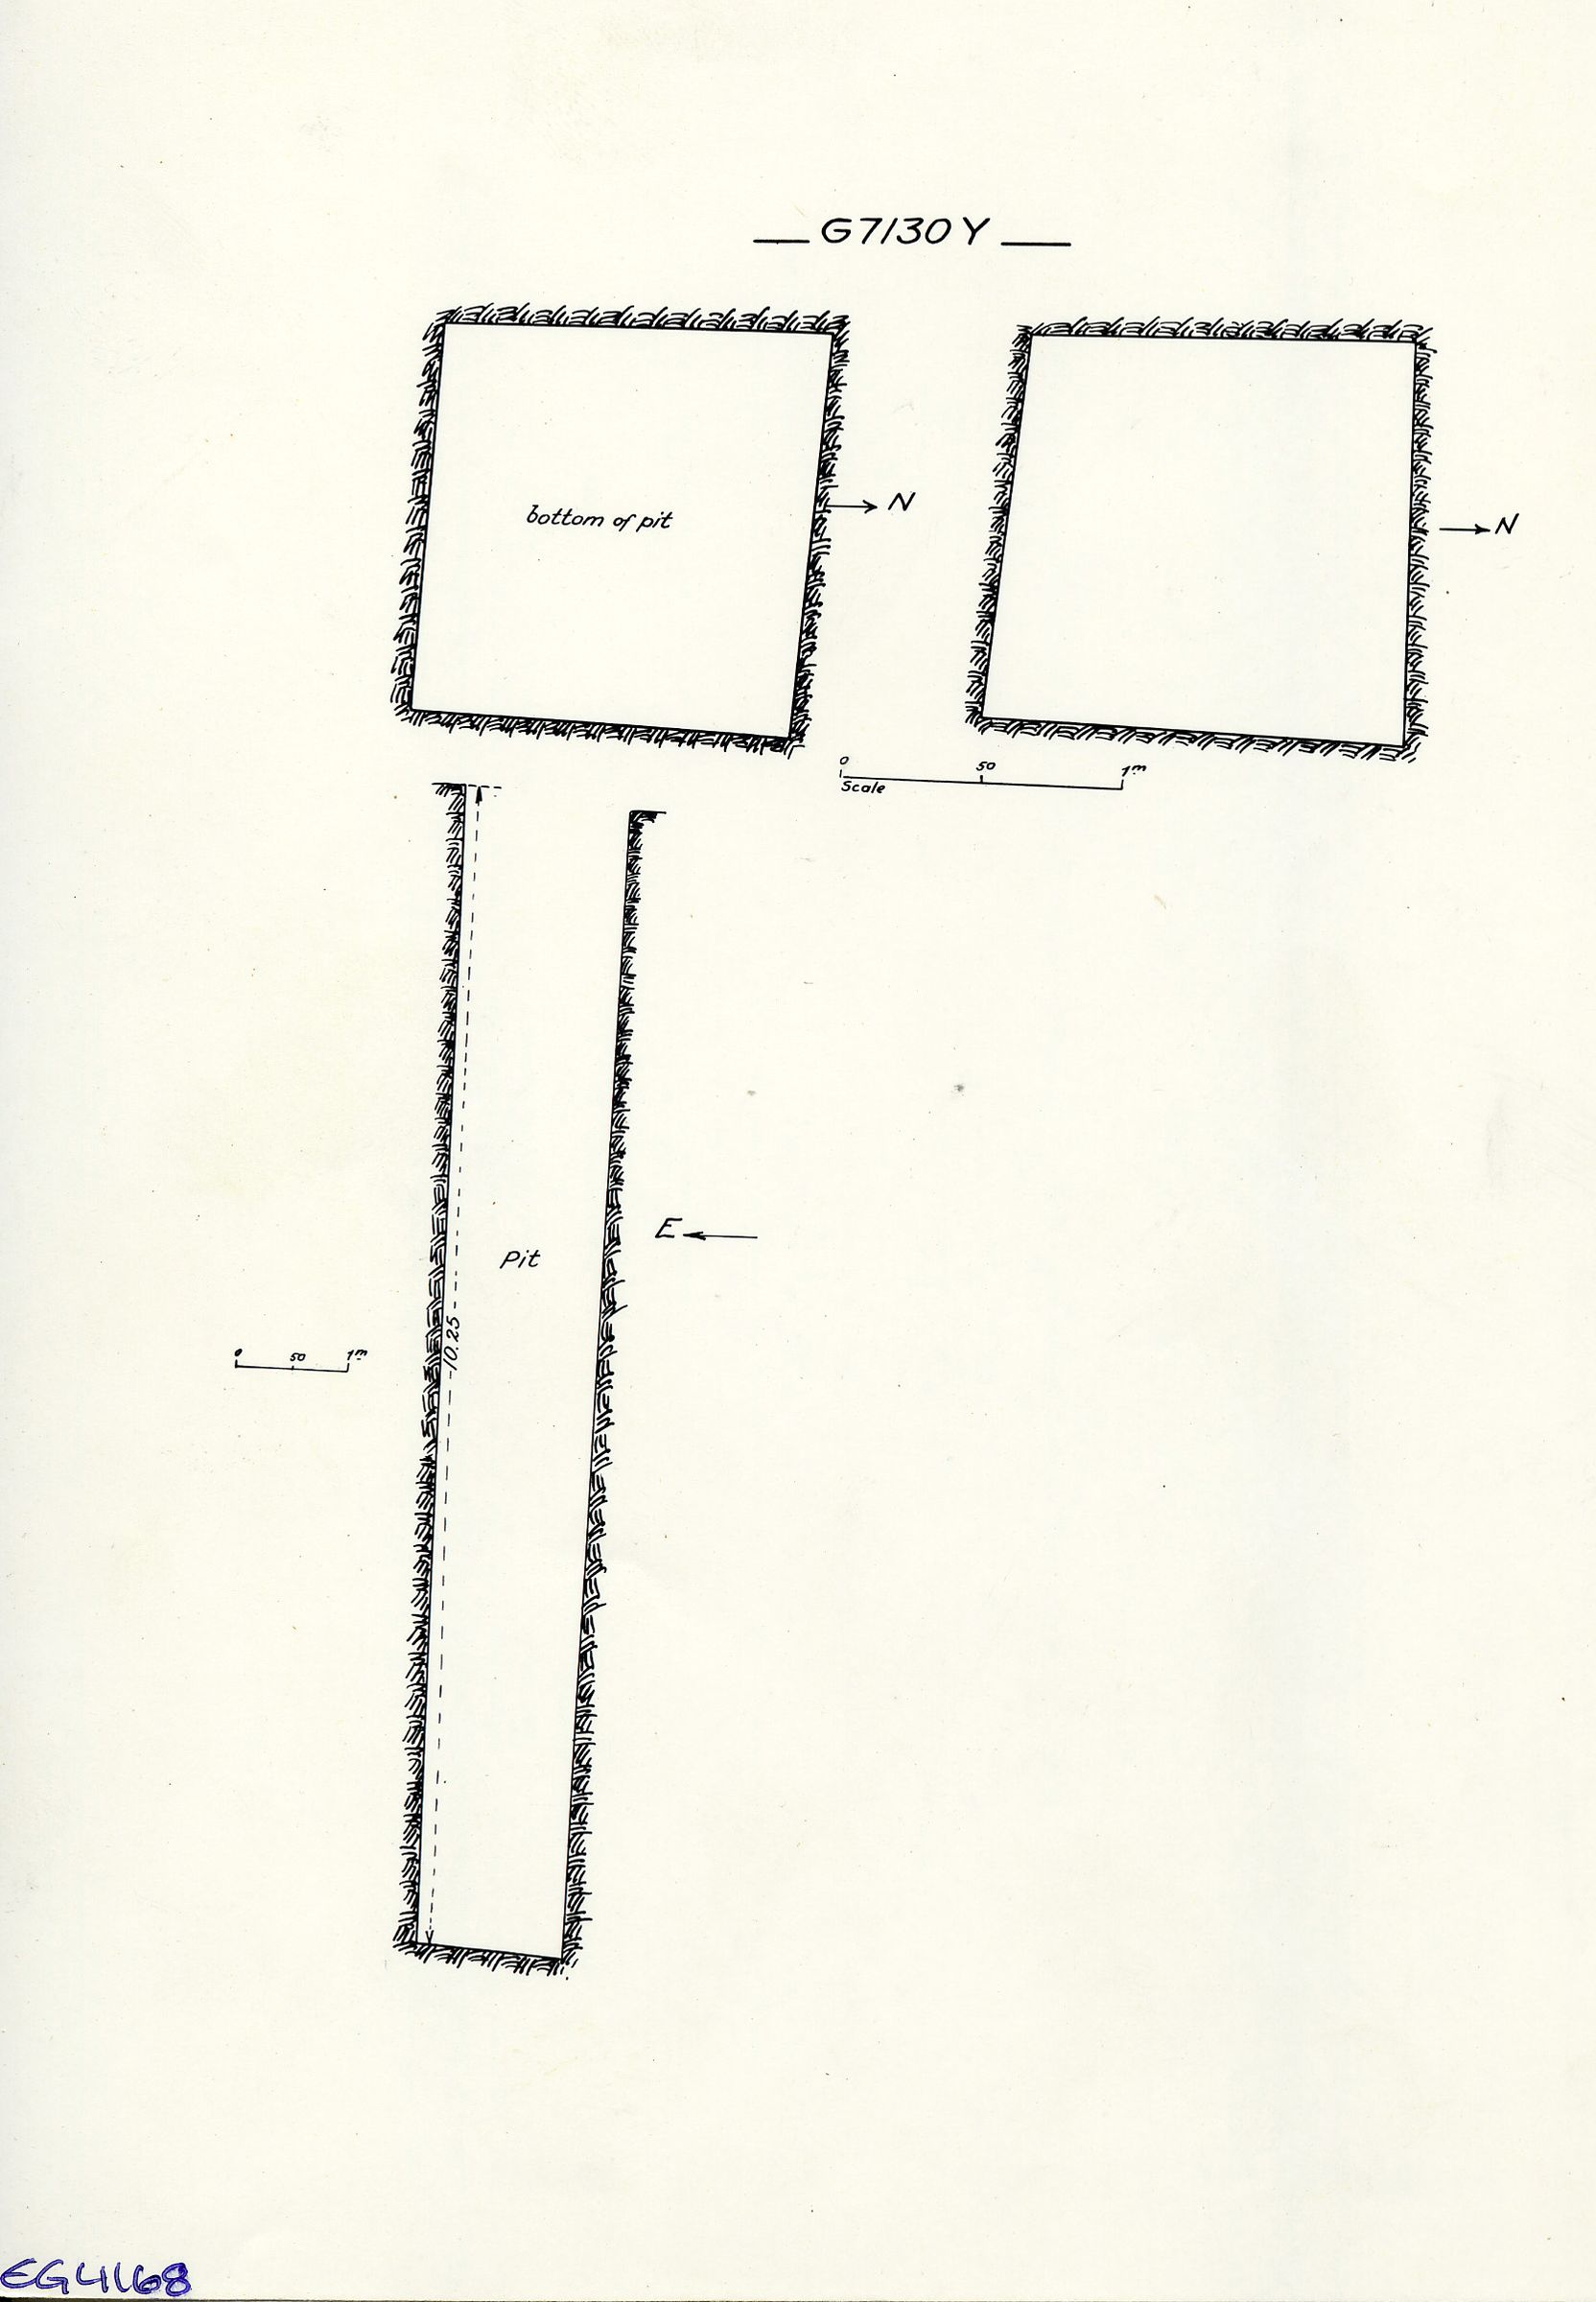 Maps and plans: G 7130, Shaft Y (= G 7133)